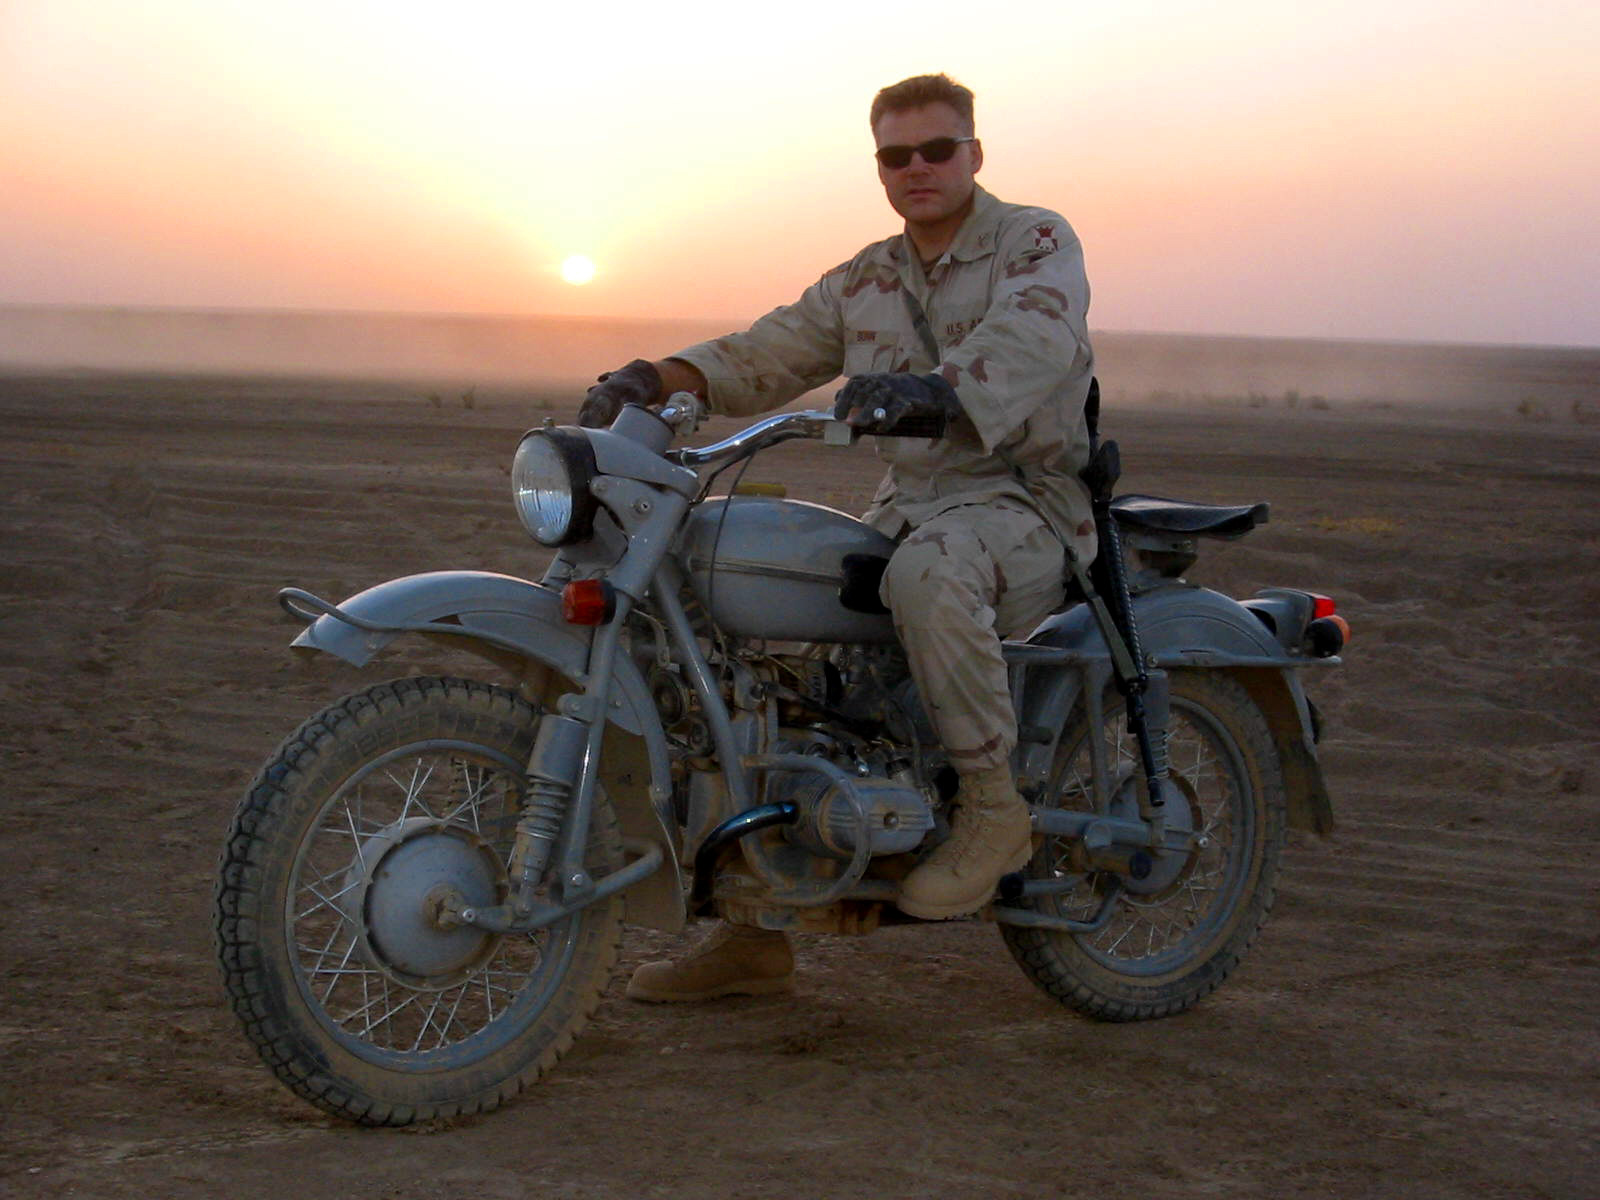 US Military Photos and Videos: - Page 3 1LT+Bunn,+Iraq+-+Russian+Ural+-+1980%27s+vintage,+without+sidecar